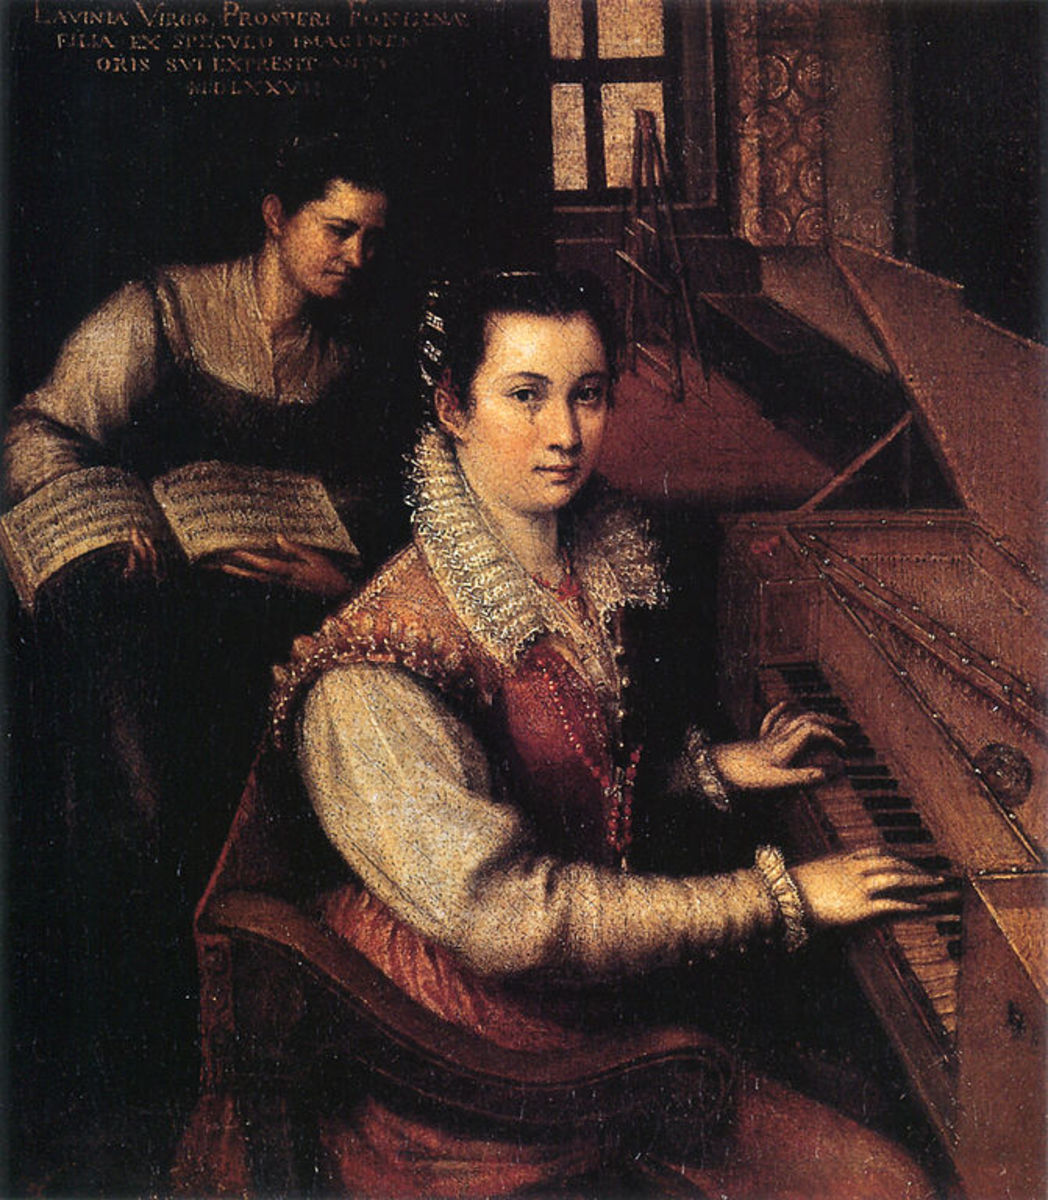 "L. Fontana, Self Portrait at the Spinet (1577), Rome Accademia di San Luca. The canvas is signed at the upper left corner ""Lavinia Virgin Daughter of Prospero Fontana"""